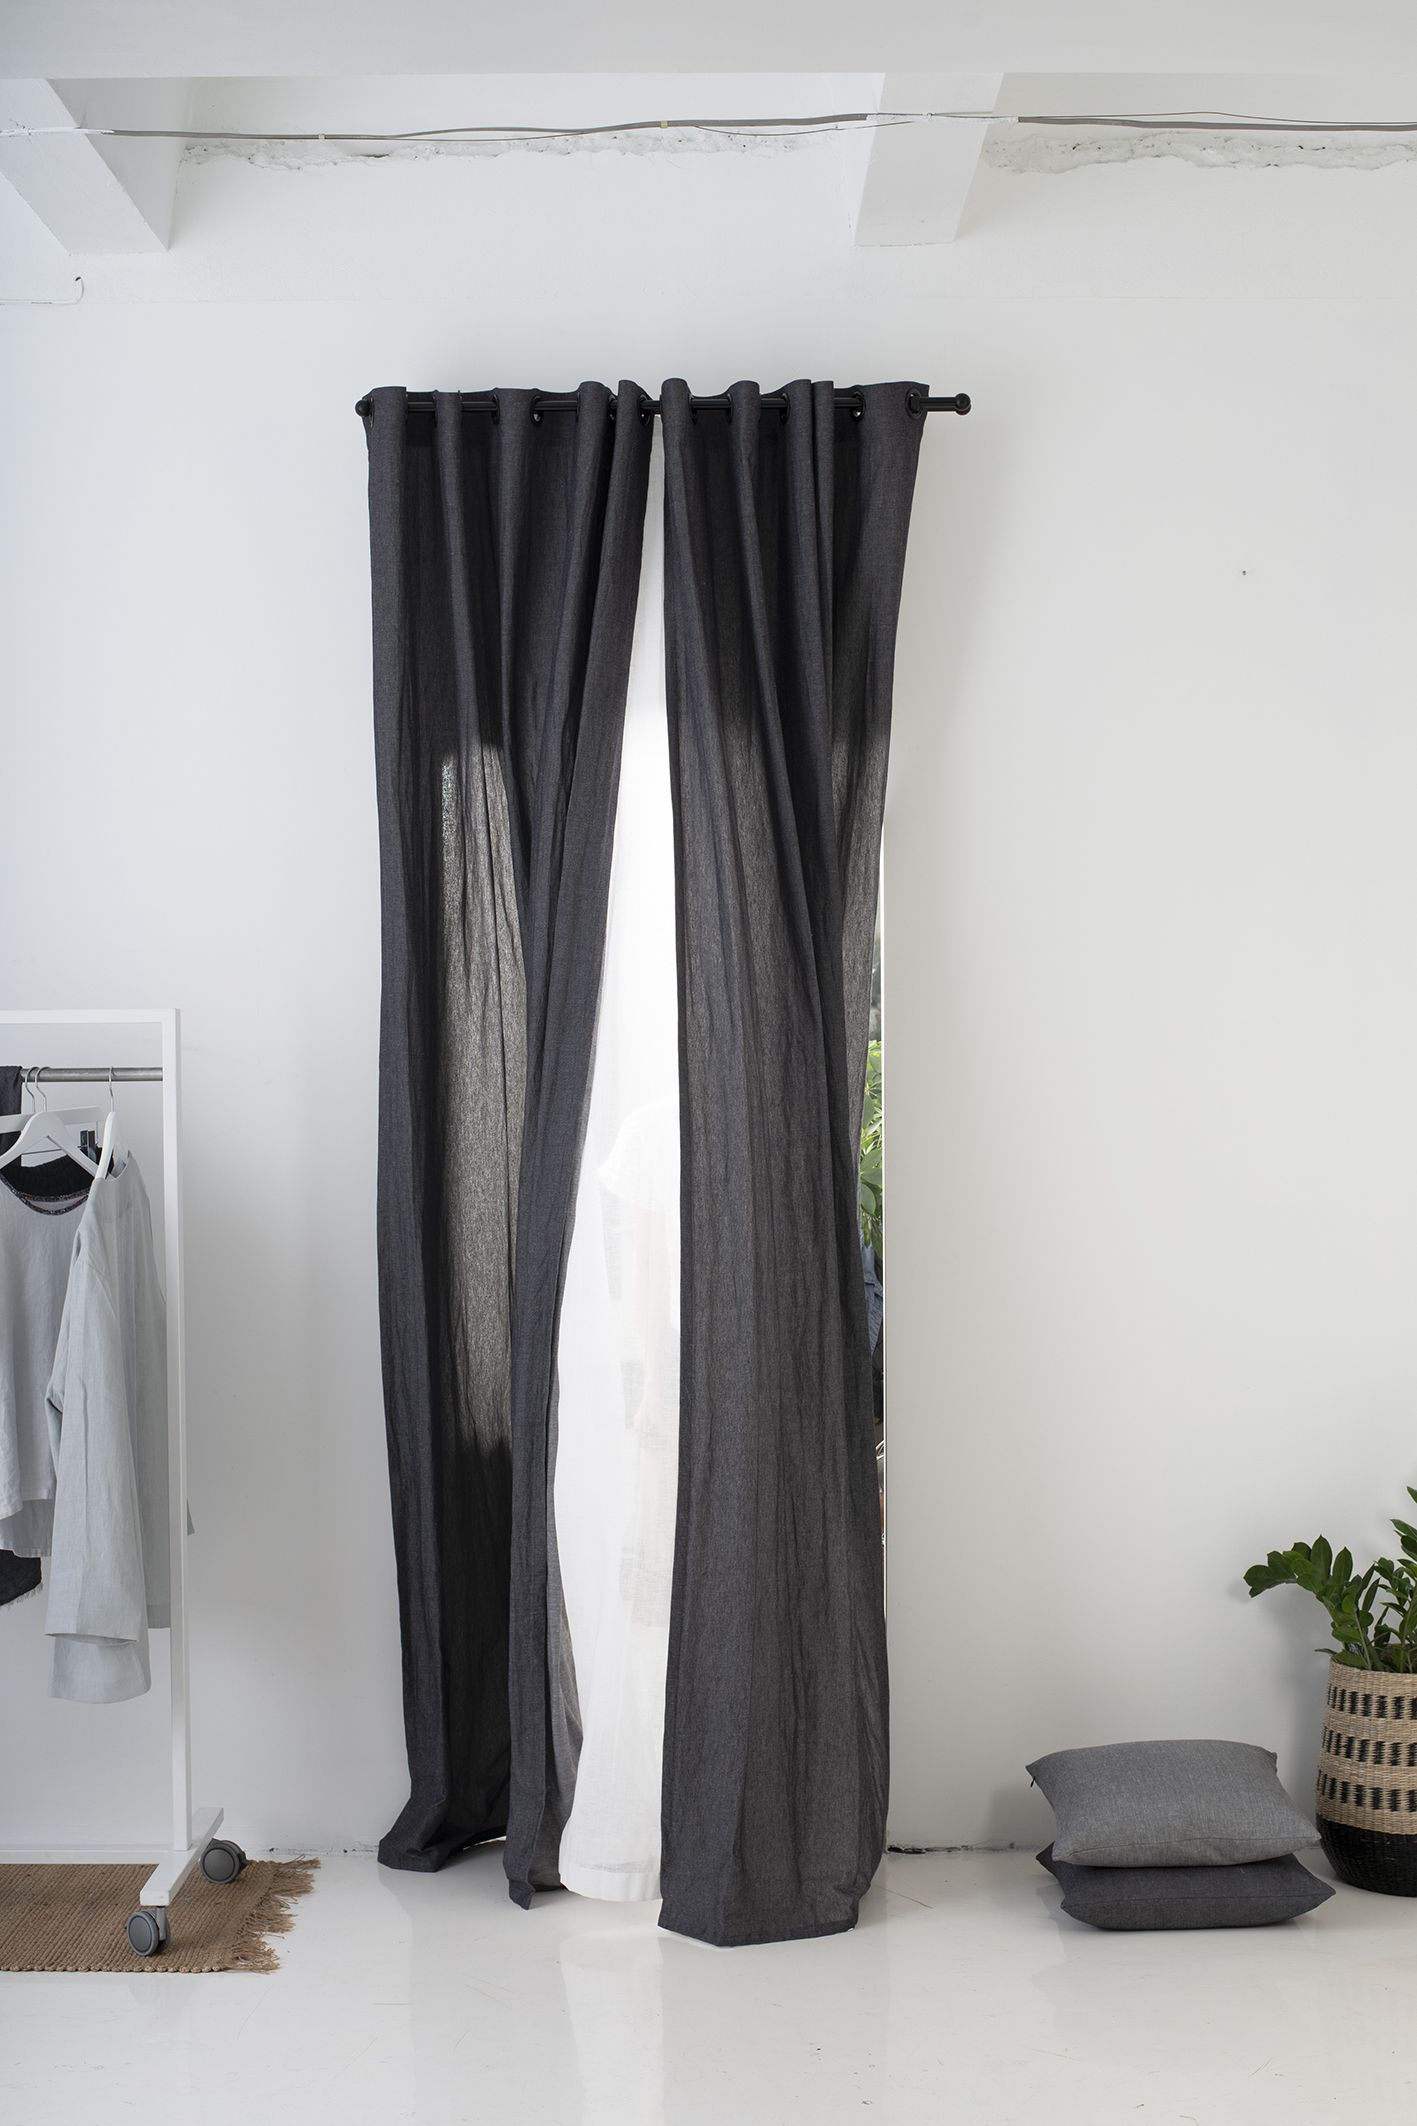 Grommet Curtains Window Curtains With Grommets Grommet Curtain Panels Dark Grey Curtains Eyelet Curtains Natural Window Treatments Grommet Curtains Panel Curtains Curtains